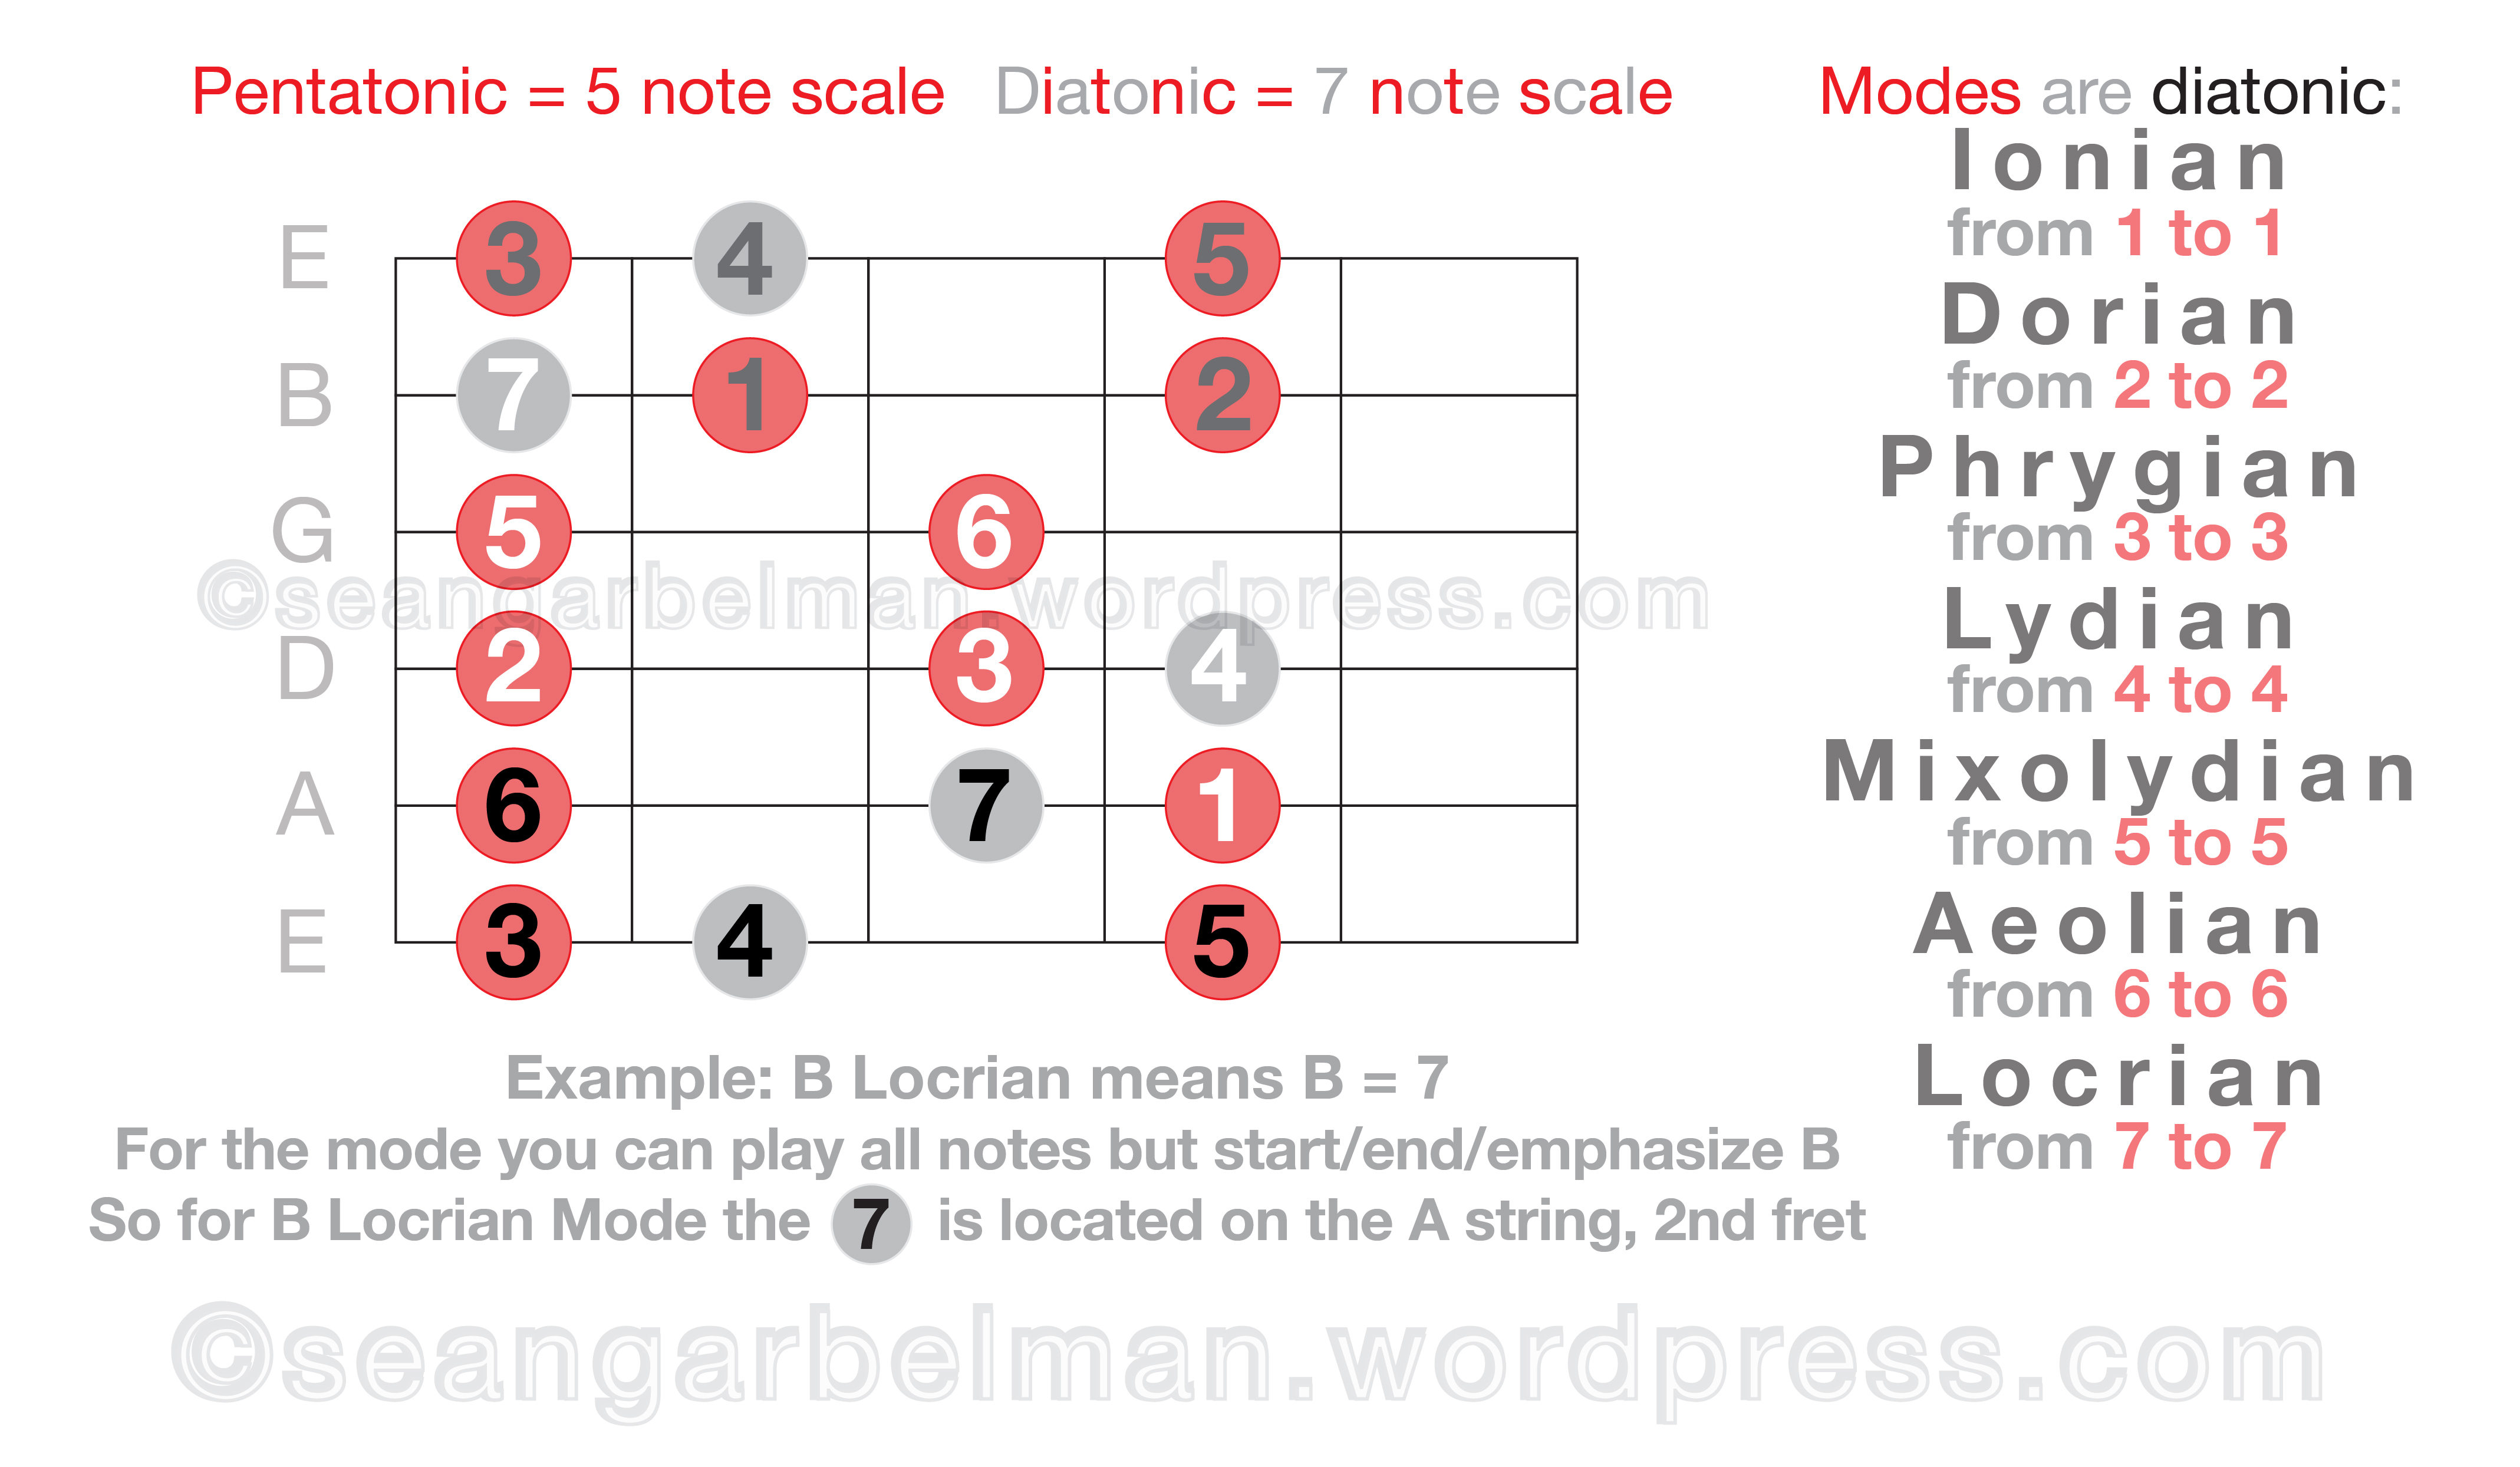 my gift to r guitar learn pentatonic scales diatonic scales and modes from 5 simple diagrams. Black Bedroom Furniture Sets. Home Design Ideas